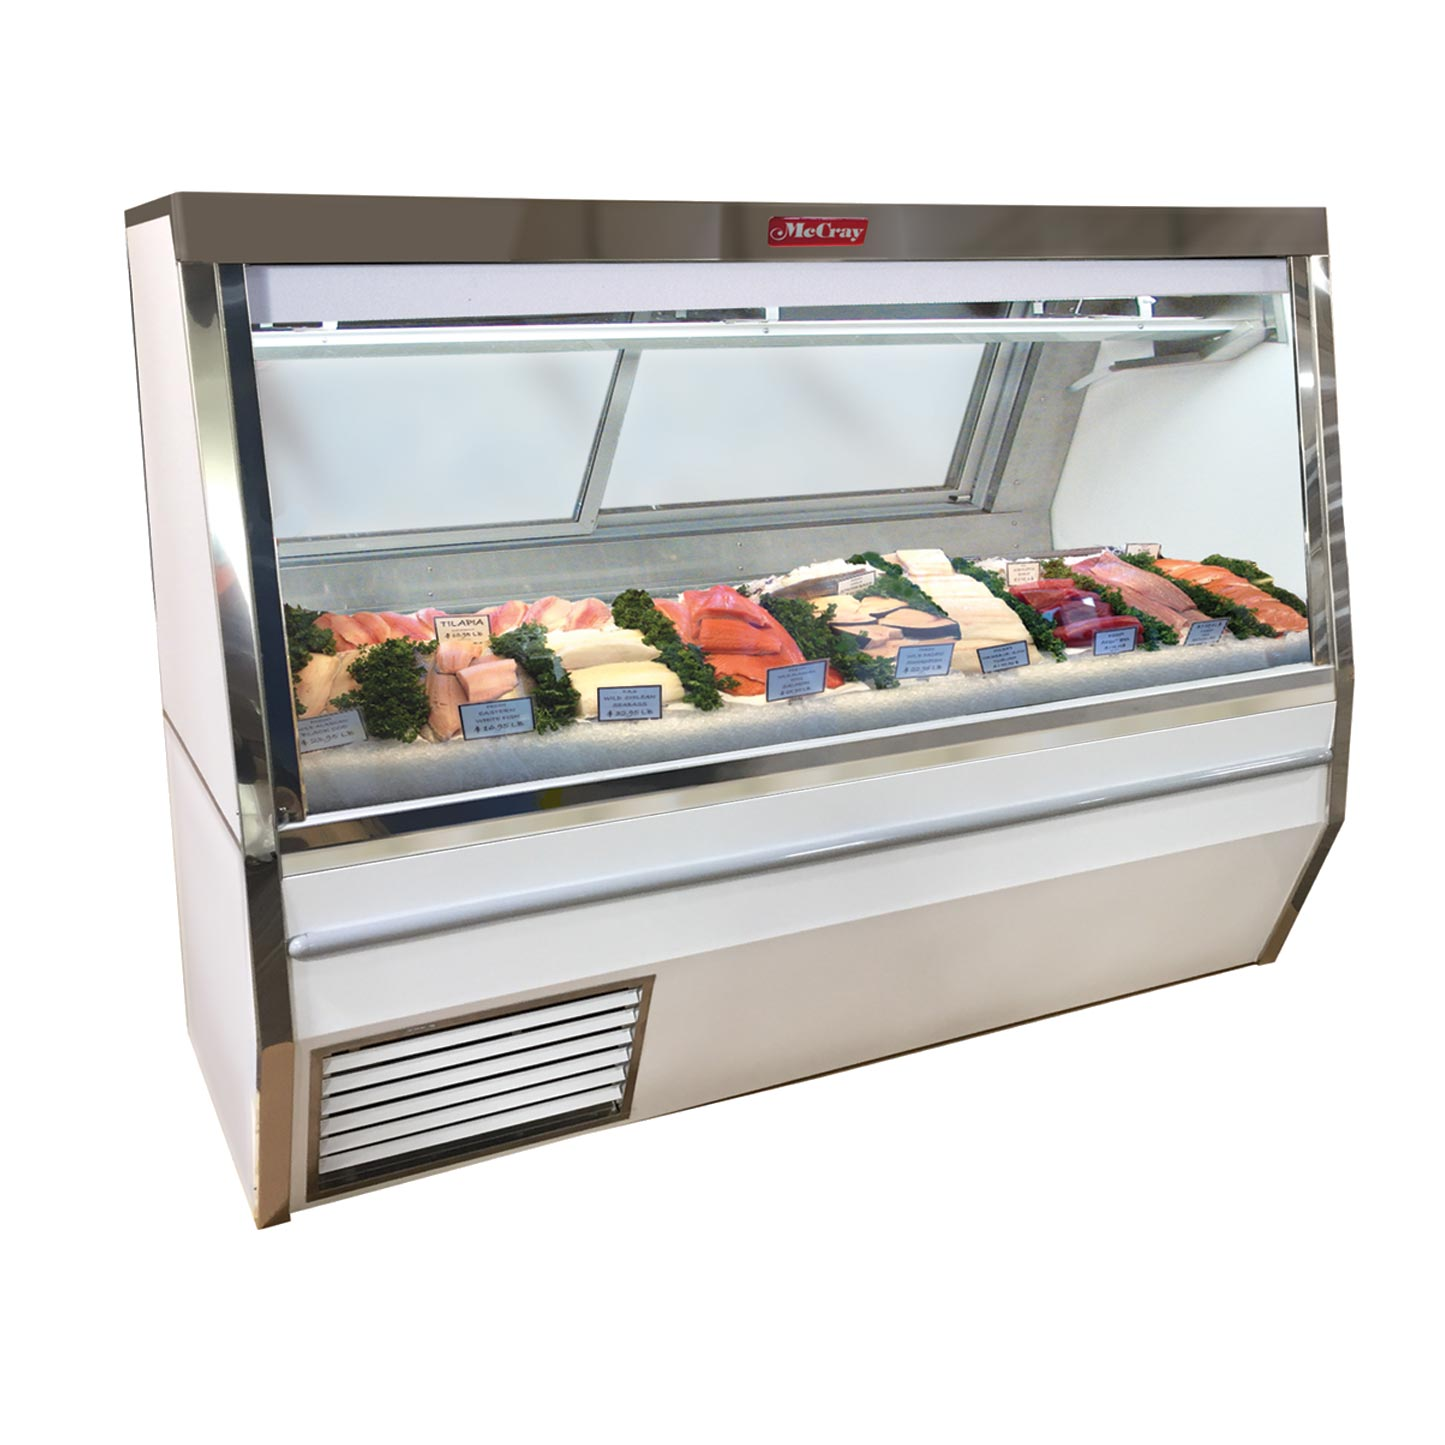 Howard-McCray SC-CFS34N-8-S-LED display case, deli seafood / poultry